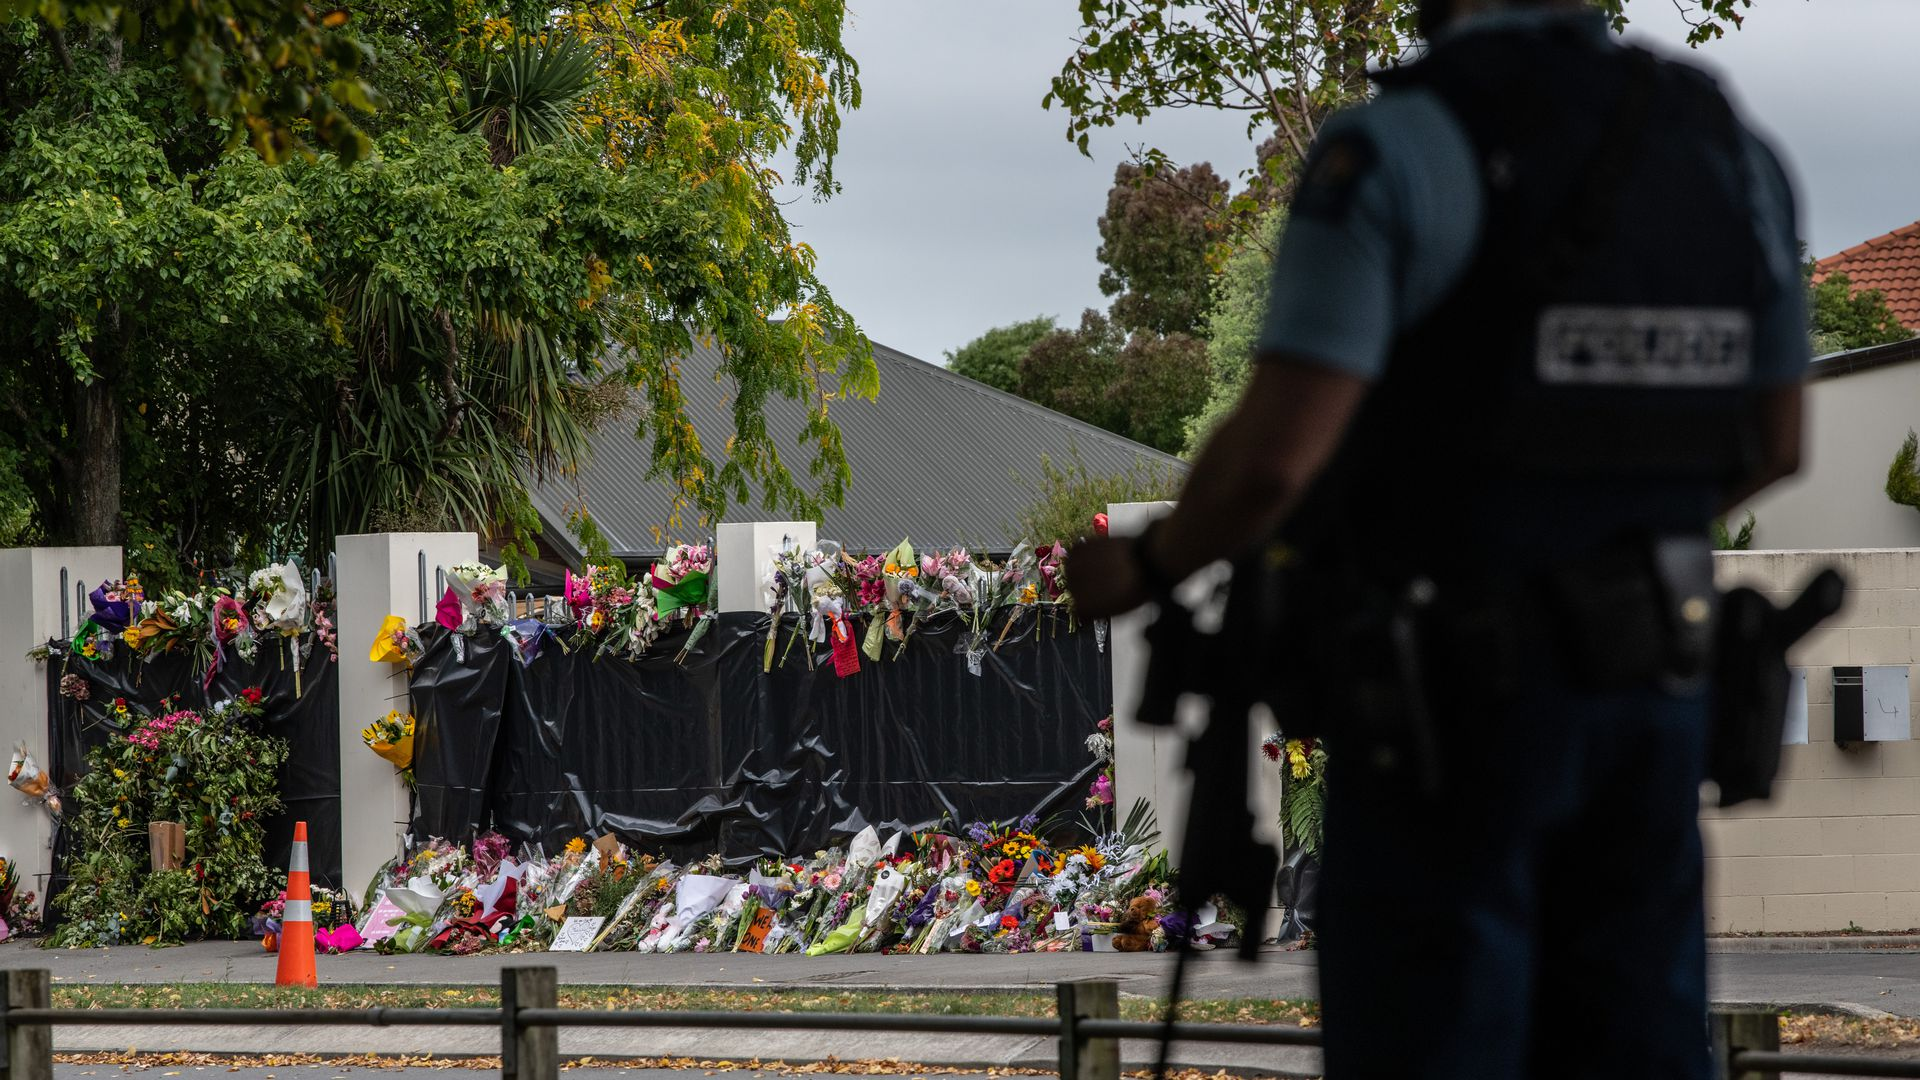 New Zealand Police mistakenly named someone who is alive as being a murder victim in the Christchurch attacks.